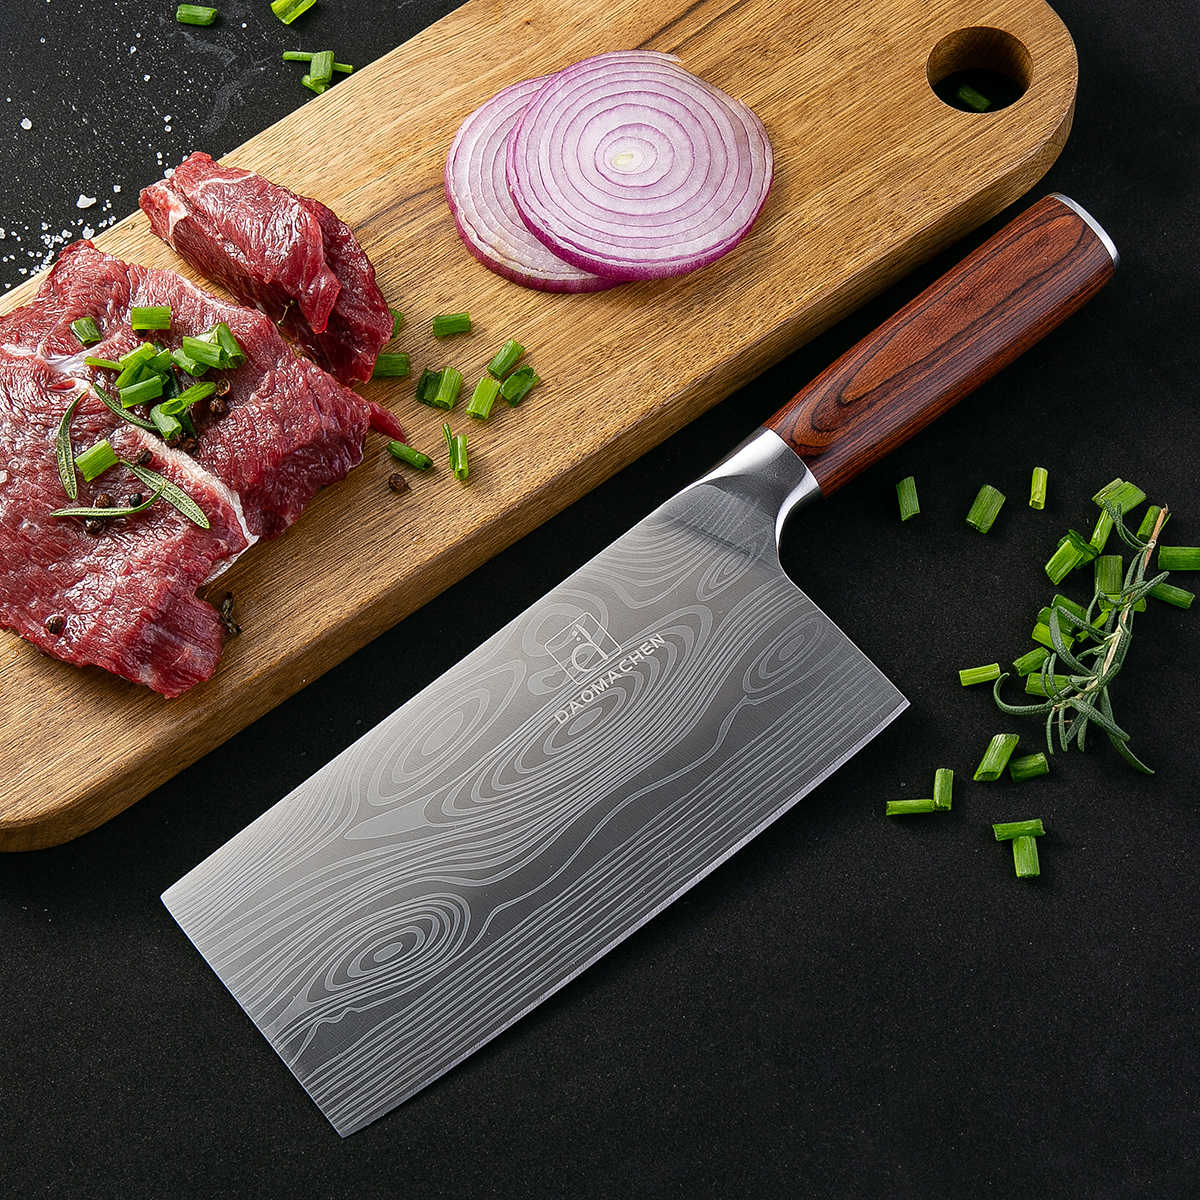 DAOMACHEN chef Knives Professional Kitchen knife 7 inch 7CR17 Stainless Steel Imitation Damascus Sanding Laser Santoku Knife